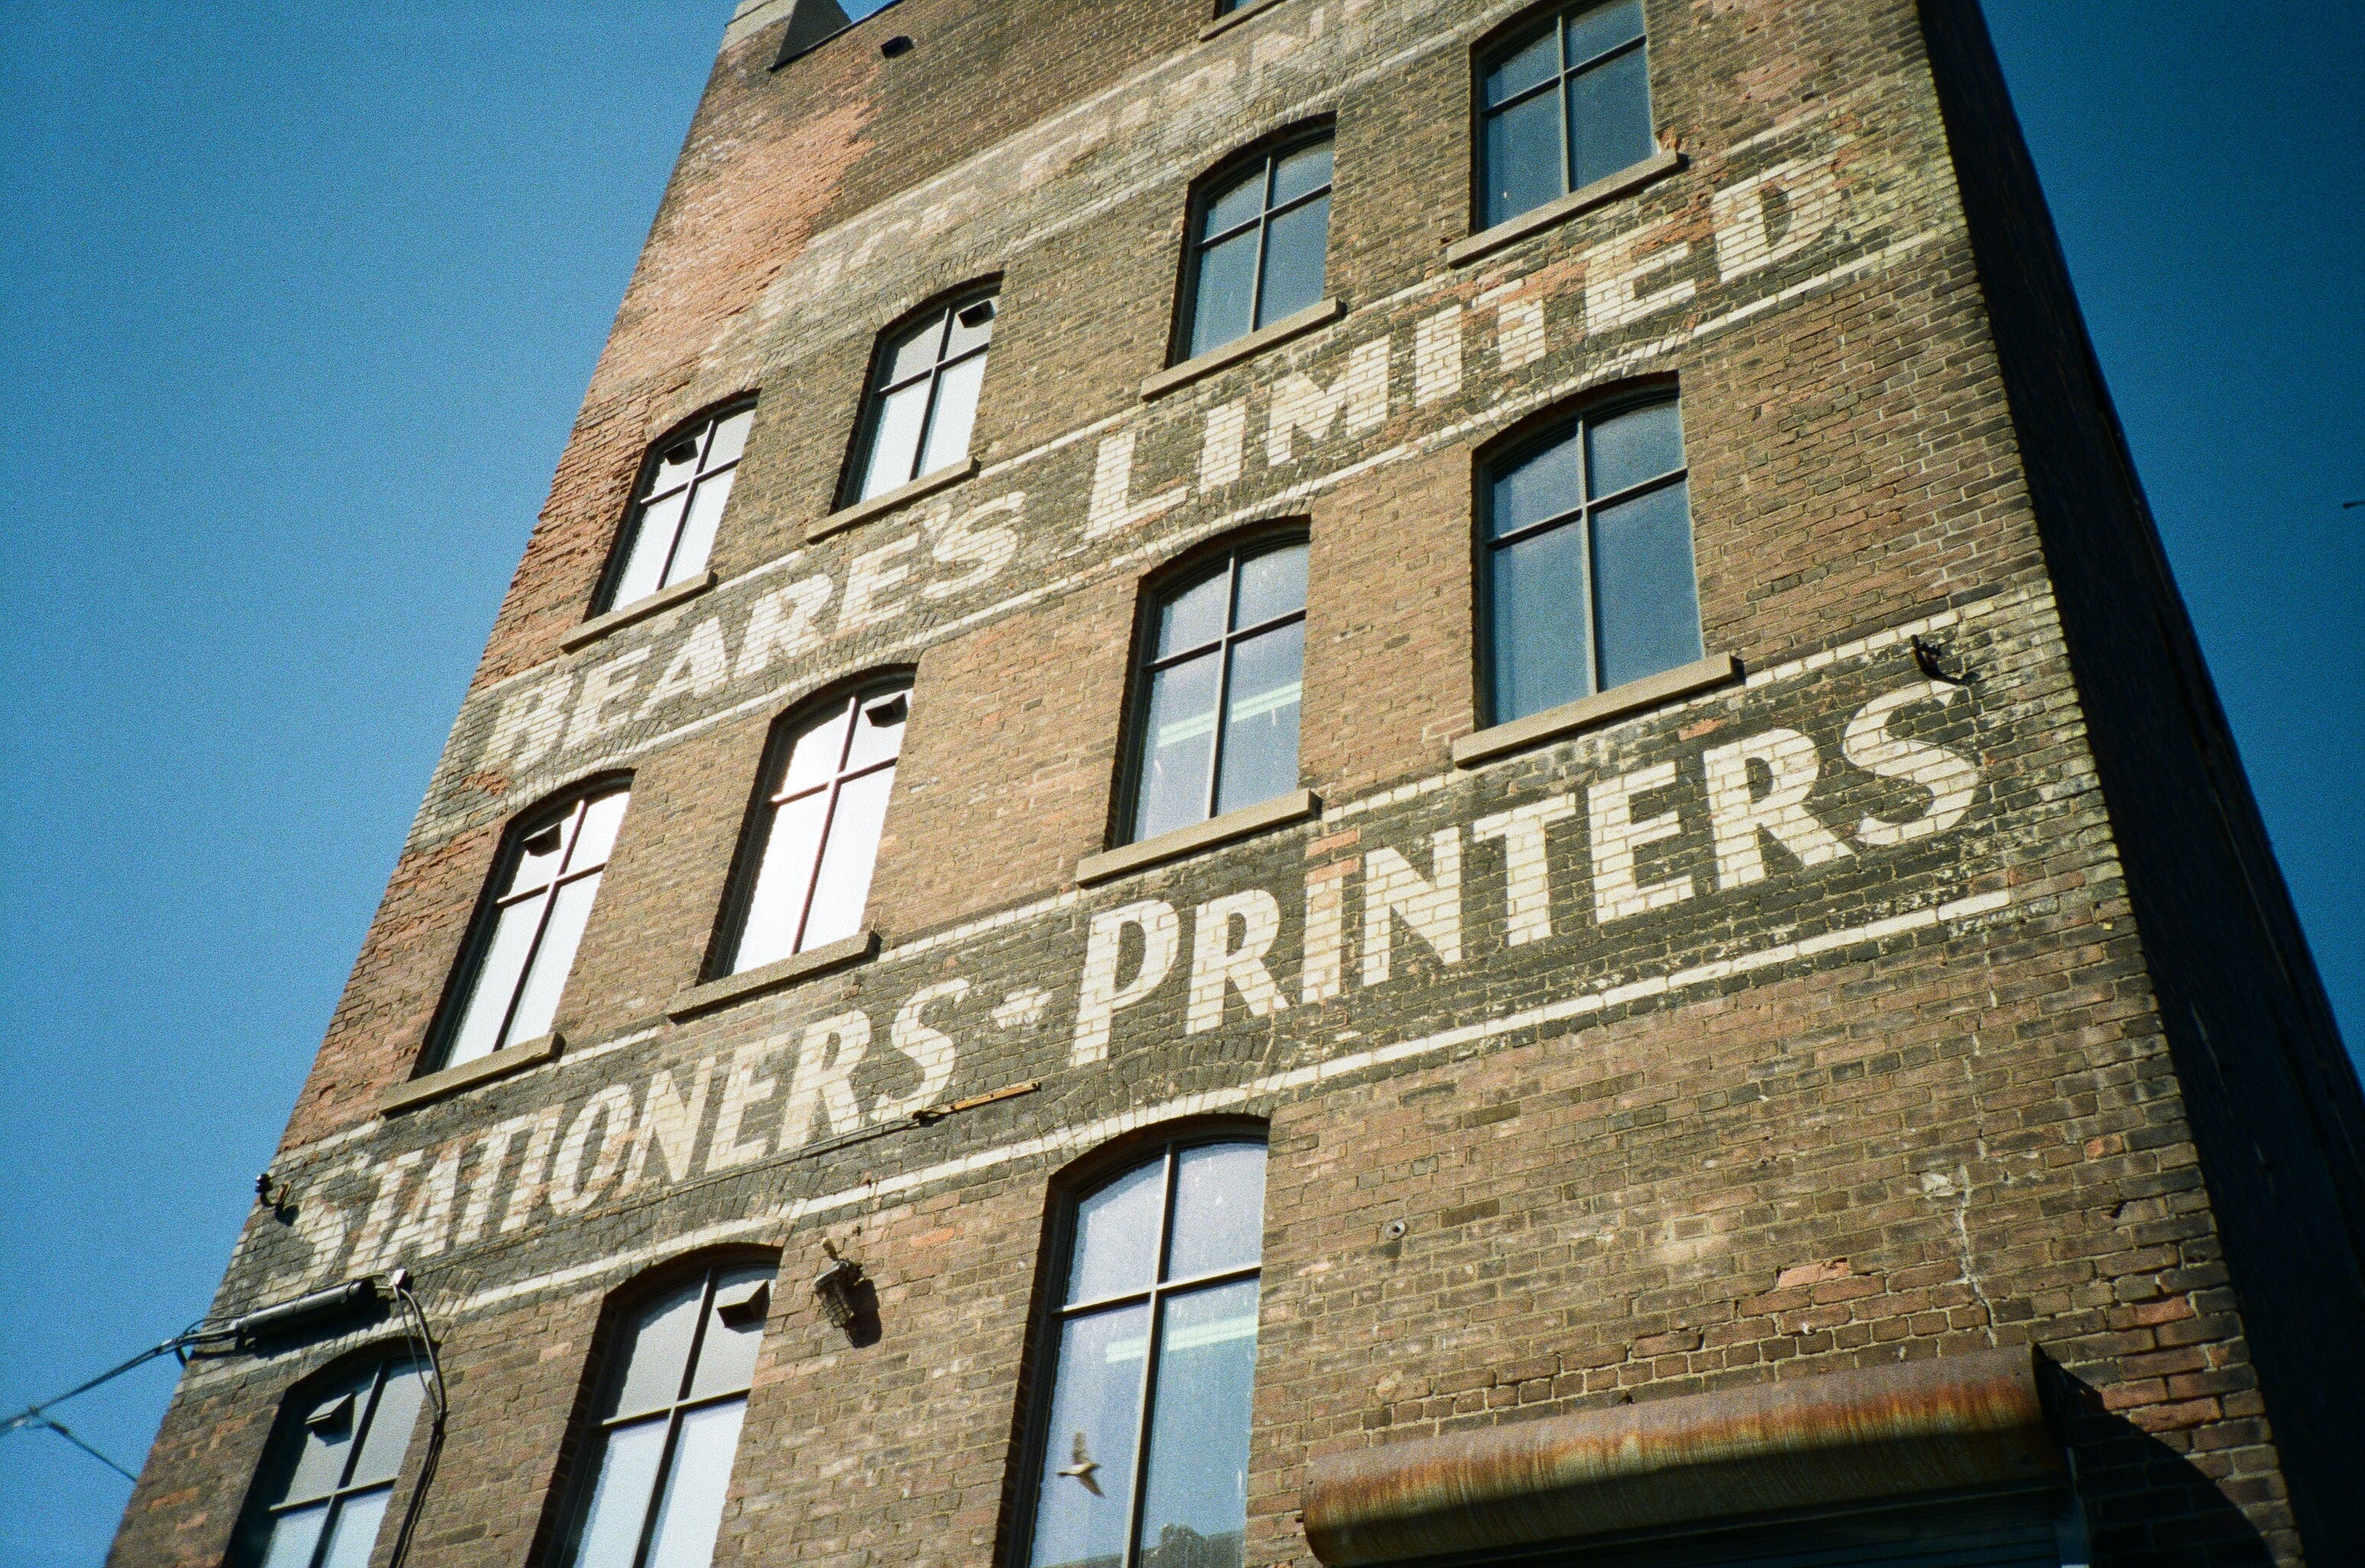 Stationers- Printers Building